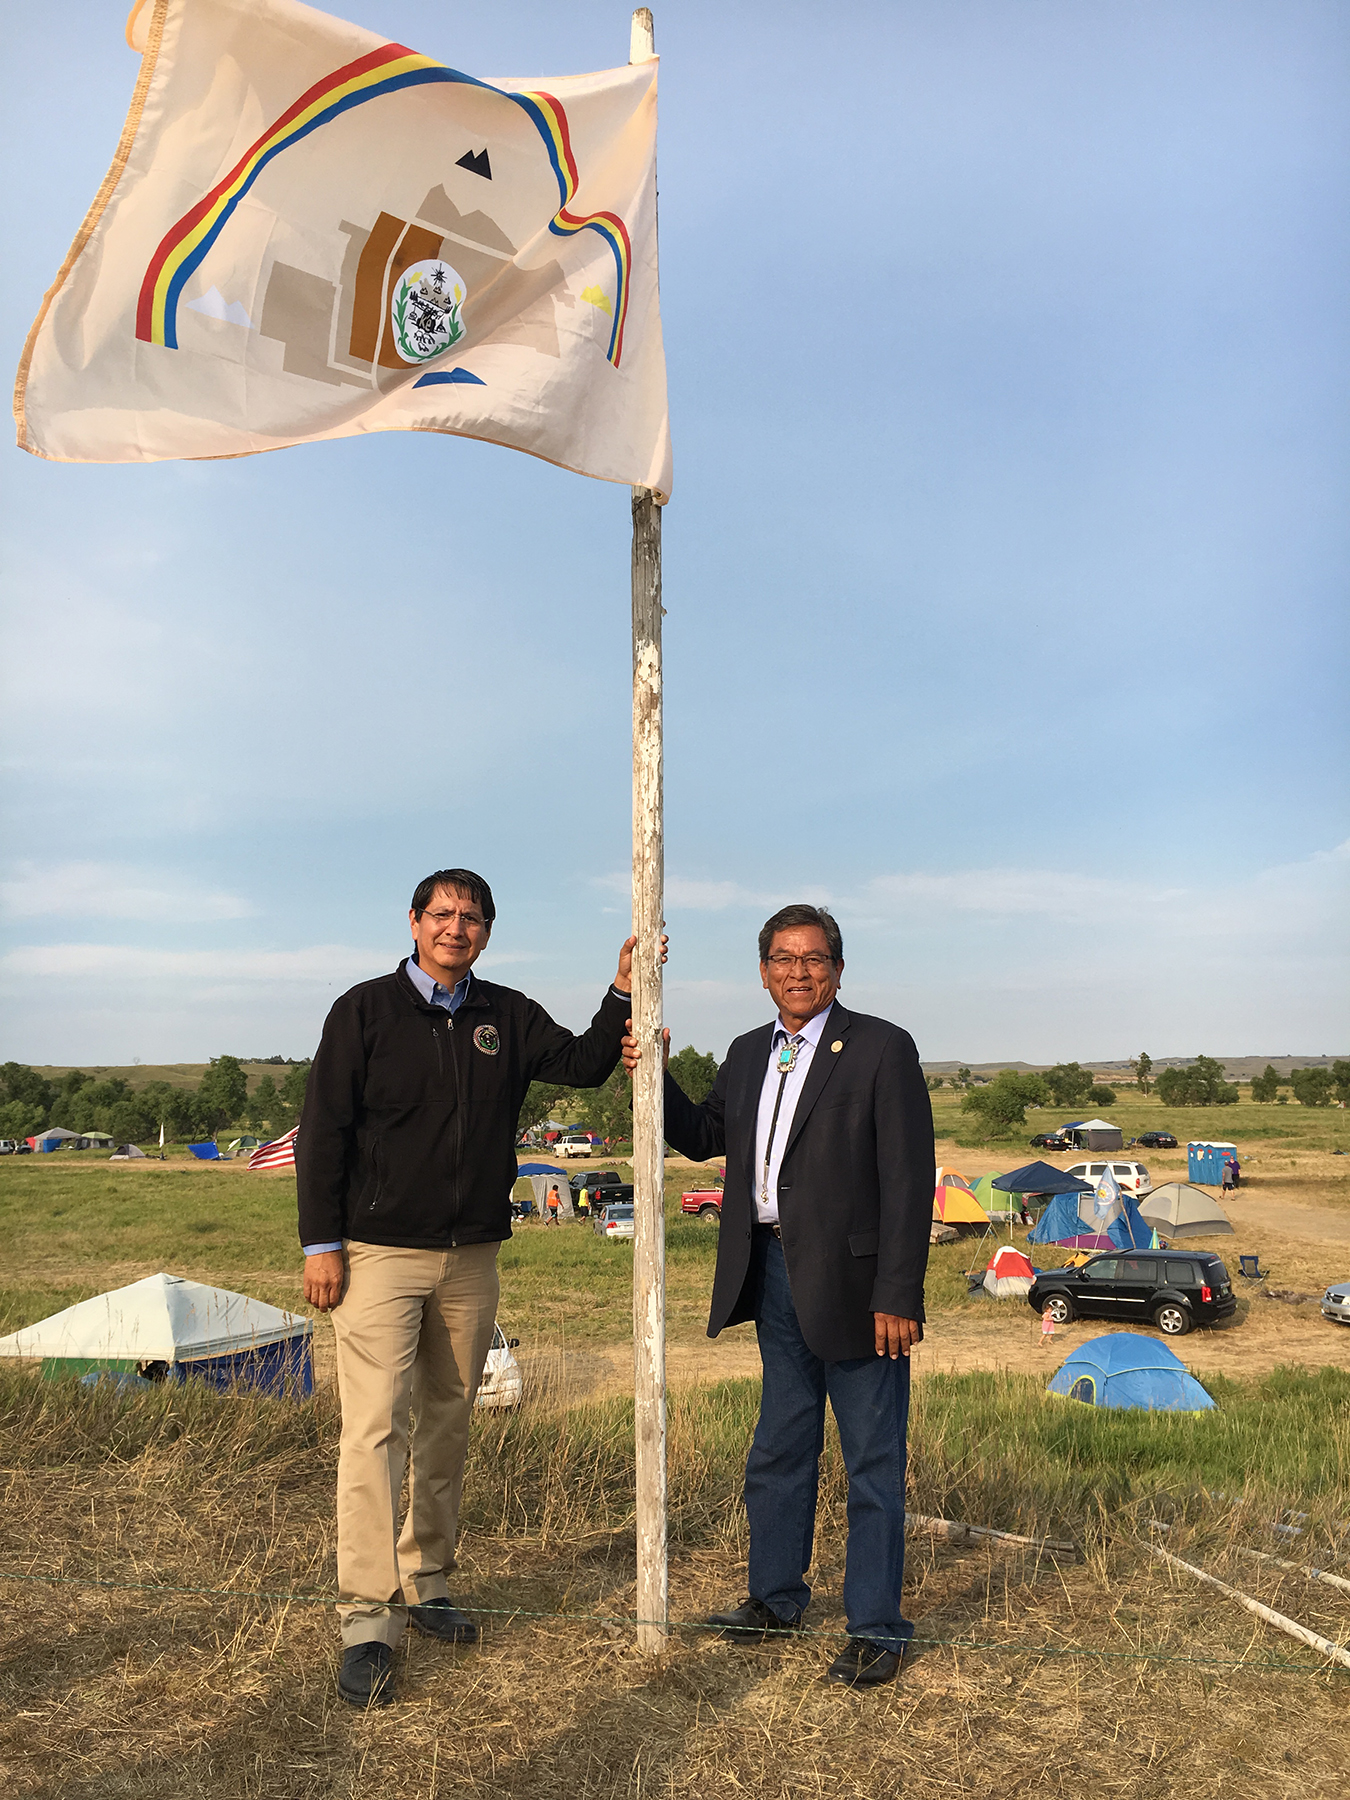 Navajo Nation President Russell Begaye and Vice President Jonathan Nez raise the Navajo Nation flag at the Sacred Stone Camp in Cannon Ball, N.D. in August 2016. Courtesay photo